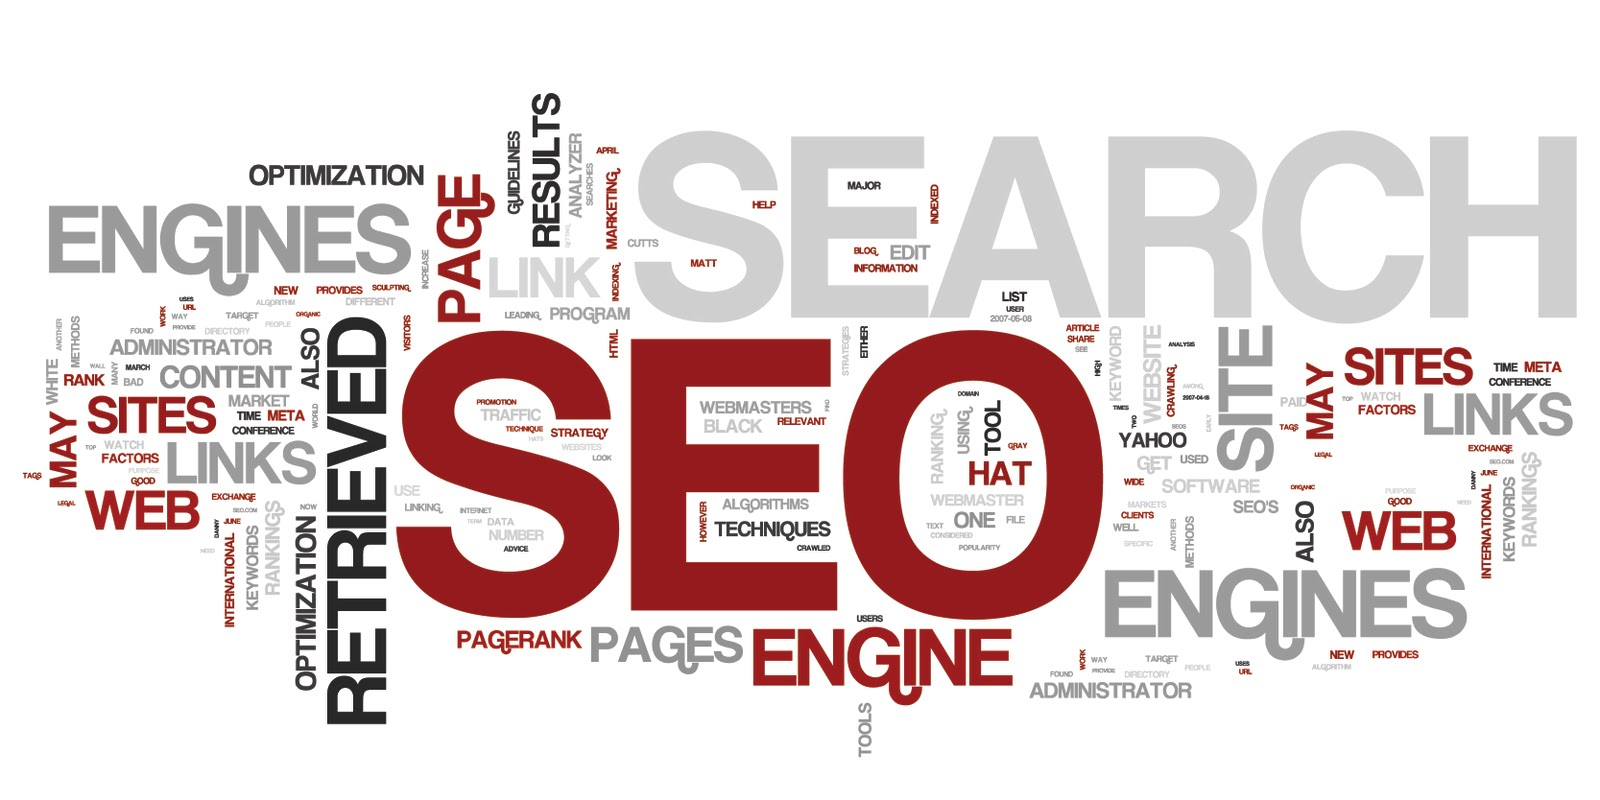 Why Use SEO?